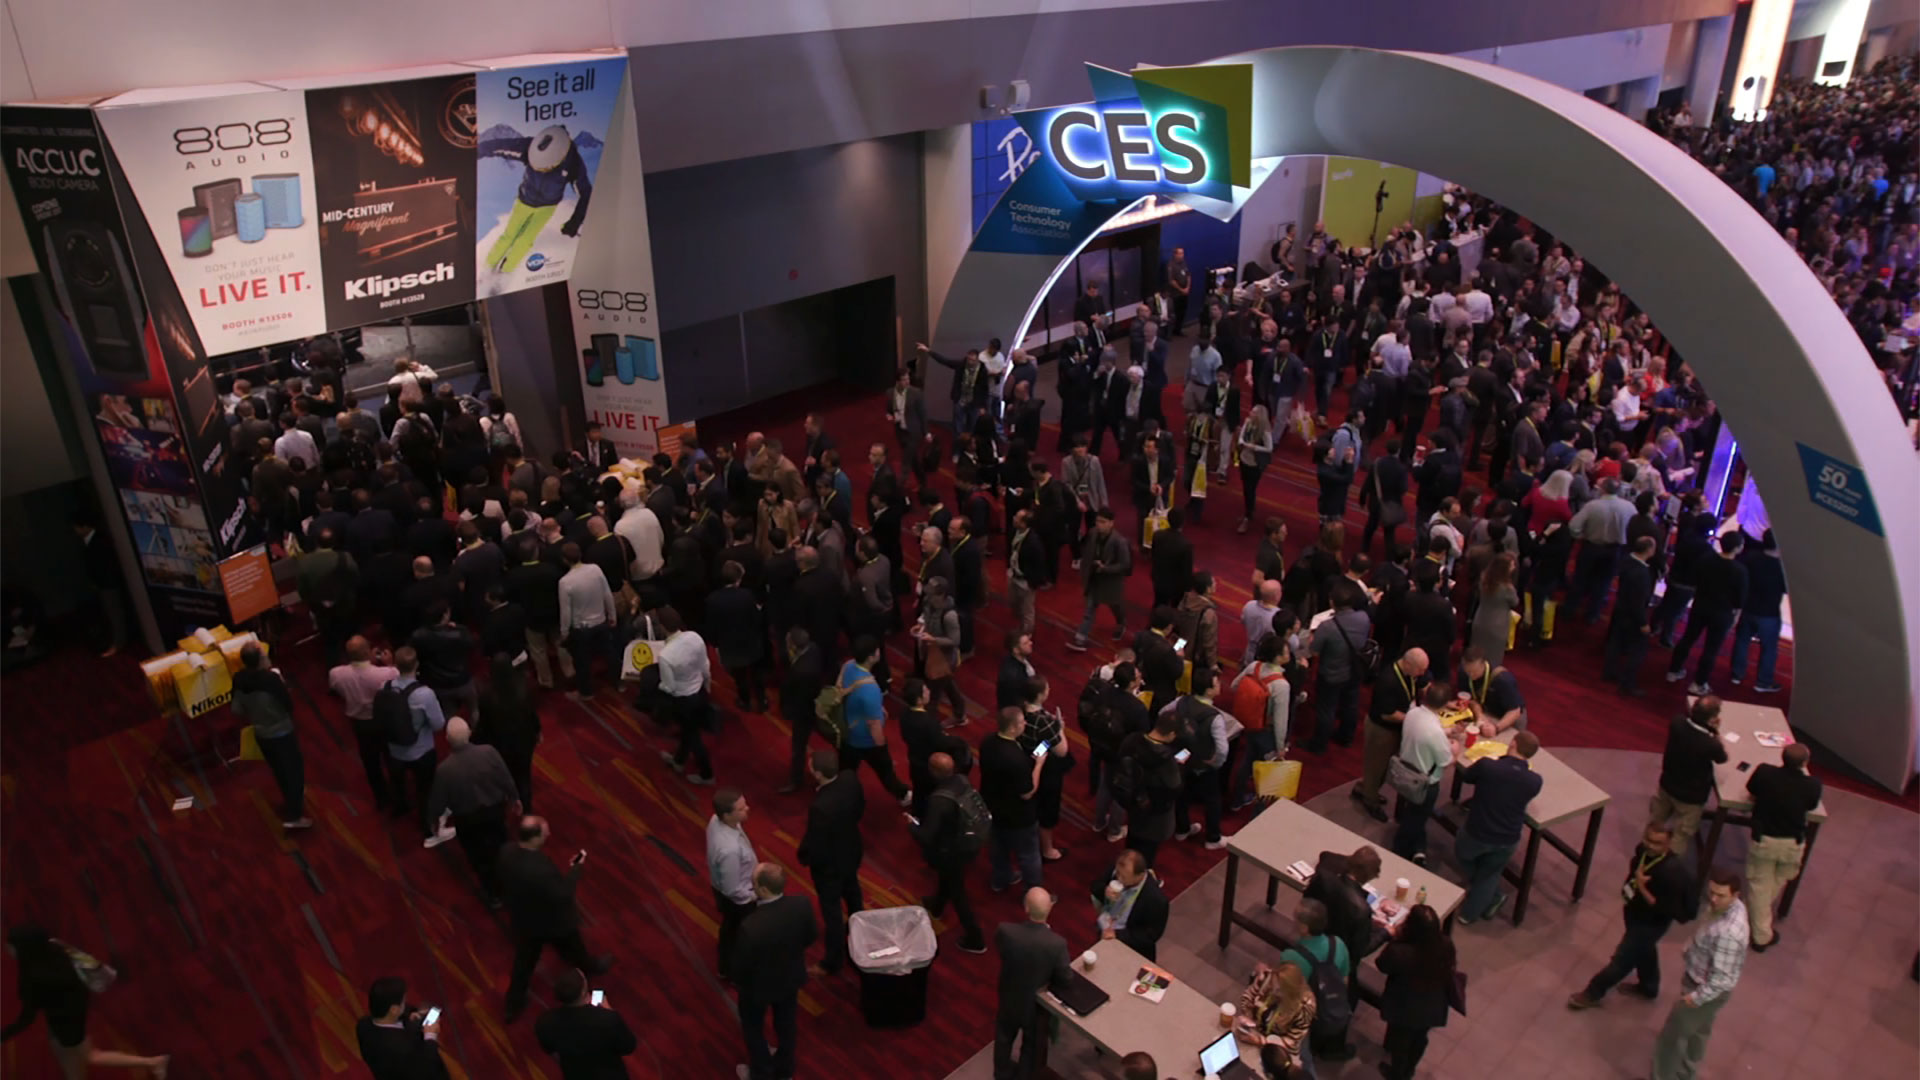 Crowd of attendees at the Consumer Electronics Show